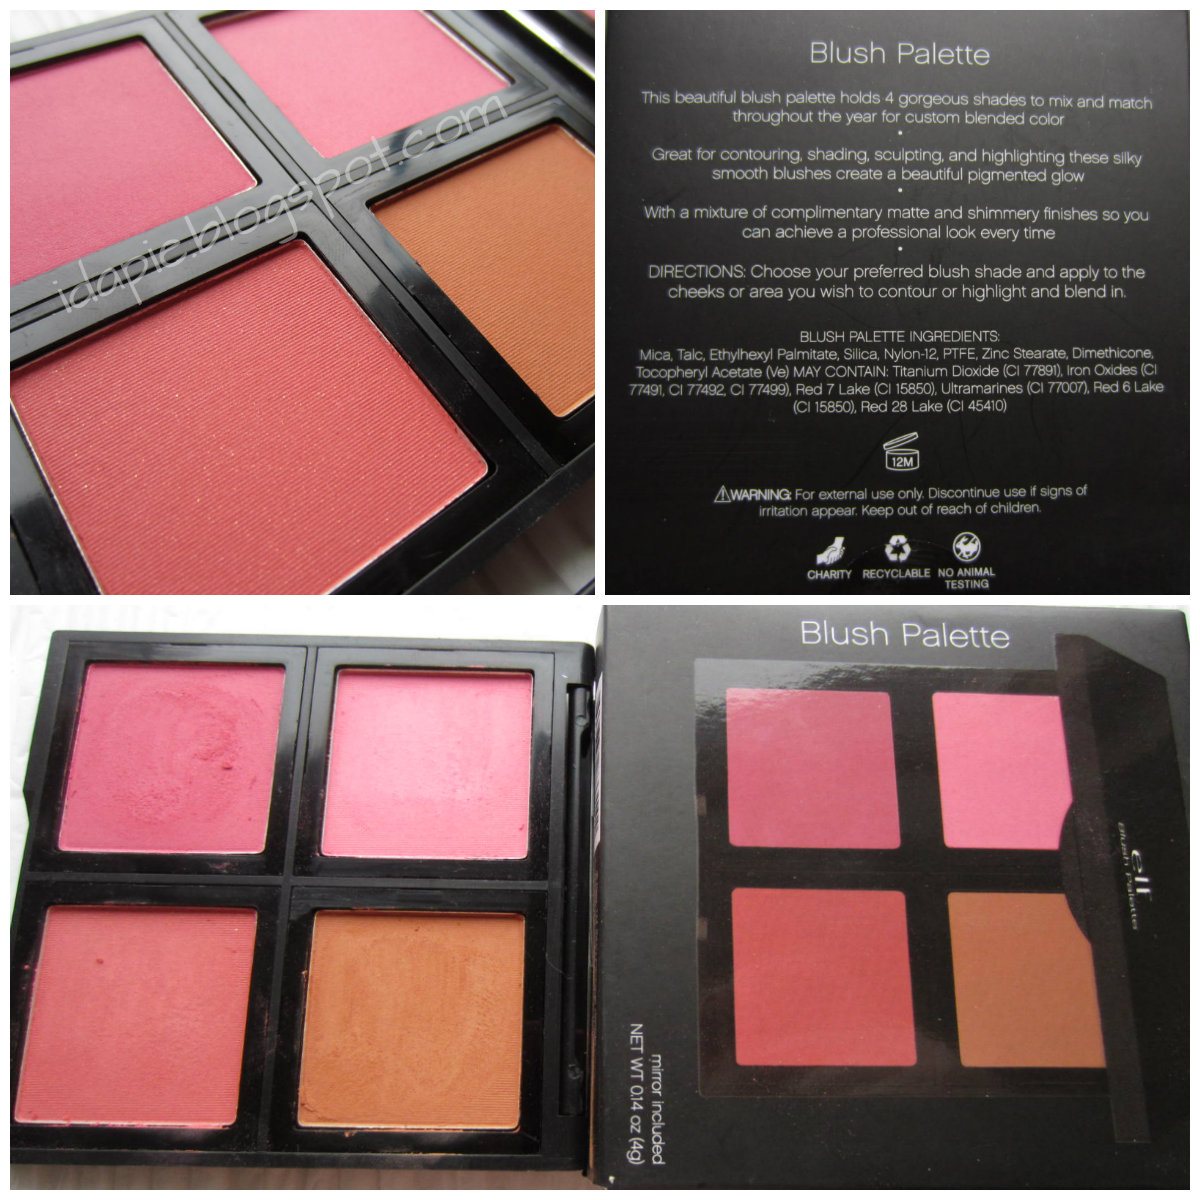 In This Post I Will Be Showing You Swatches Of Blush Palette In Fair Next  Post 20130831_160943 Elf Contour